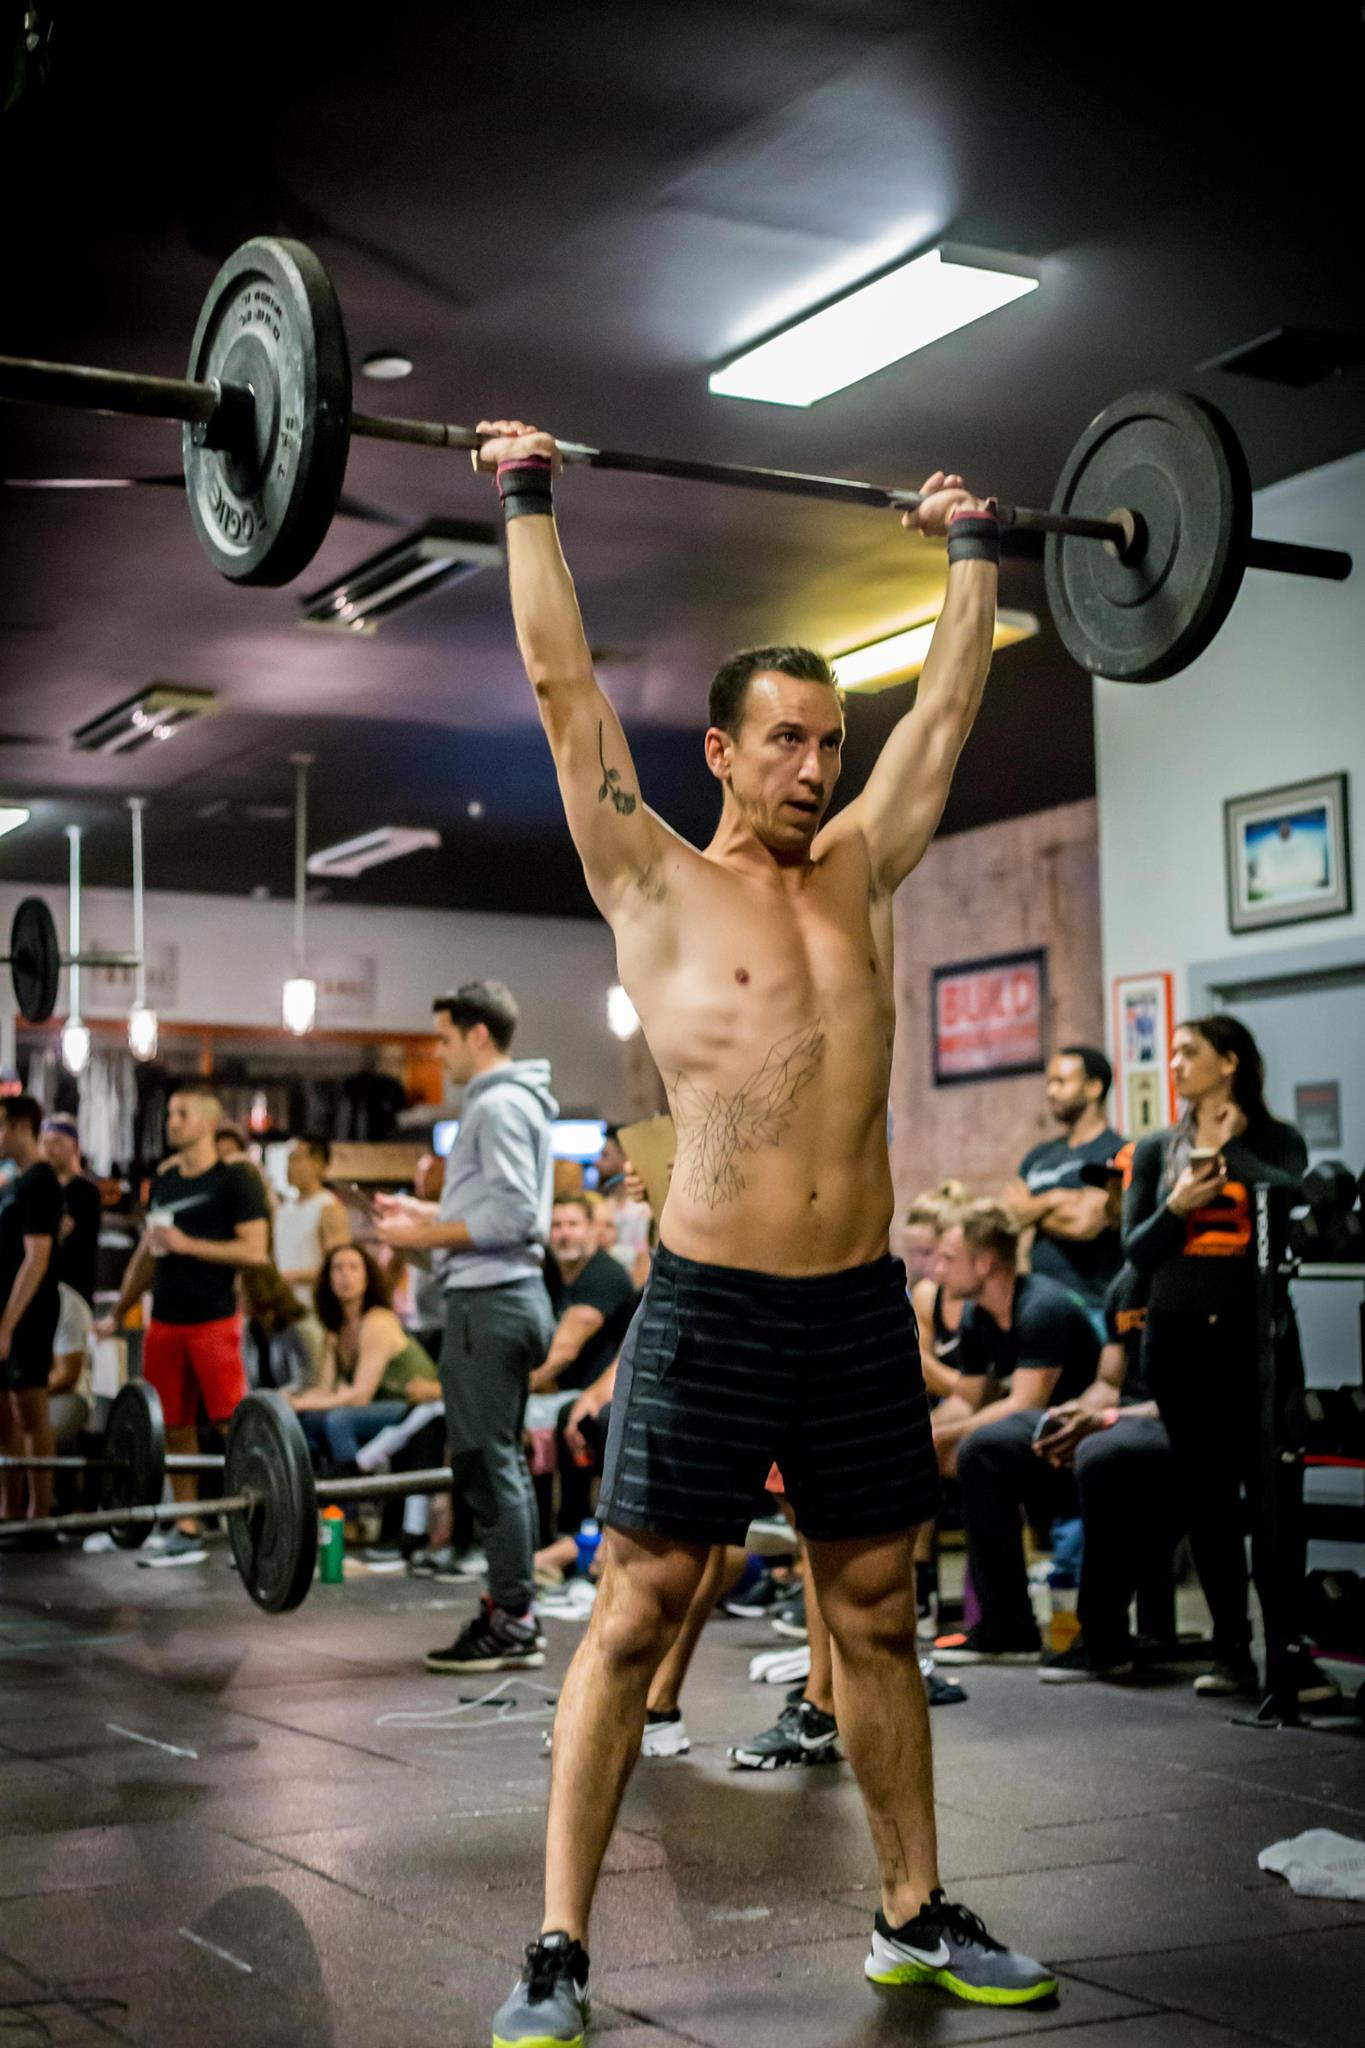 New To CrossFit And Feel Like Youre In A Foreign Language Class We Get It Each One Of Us Went Through When Started Were Trying Figure Out